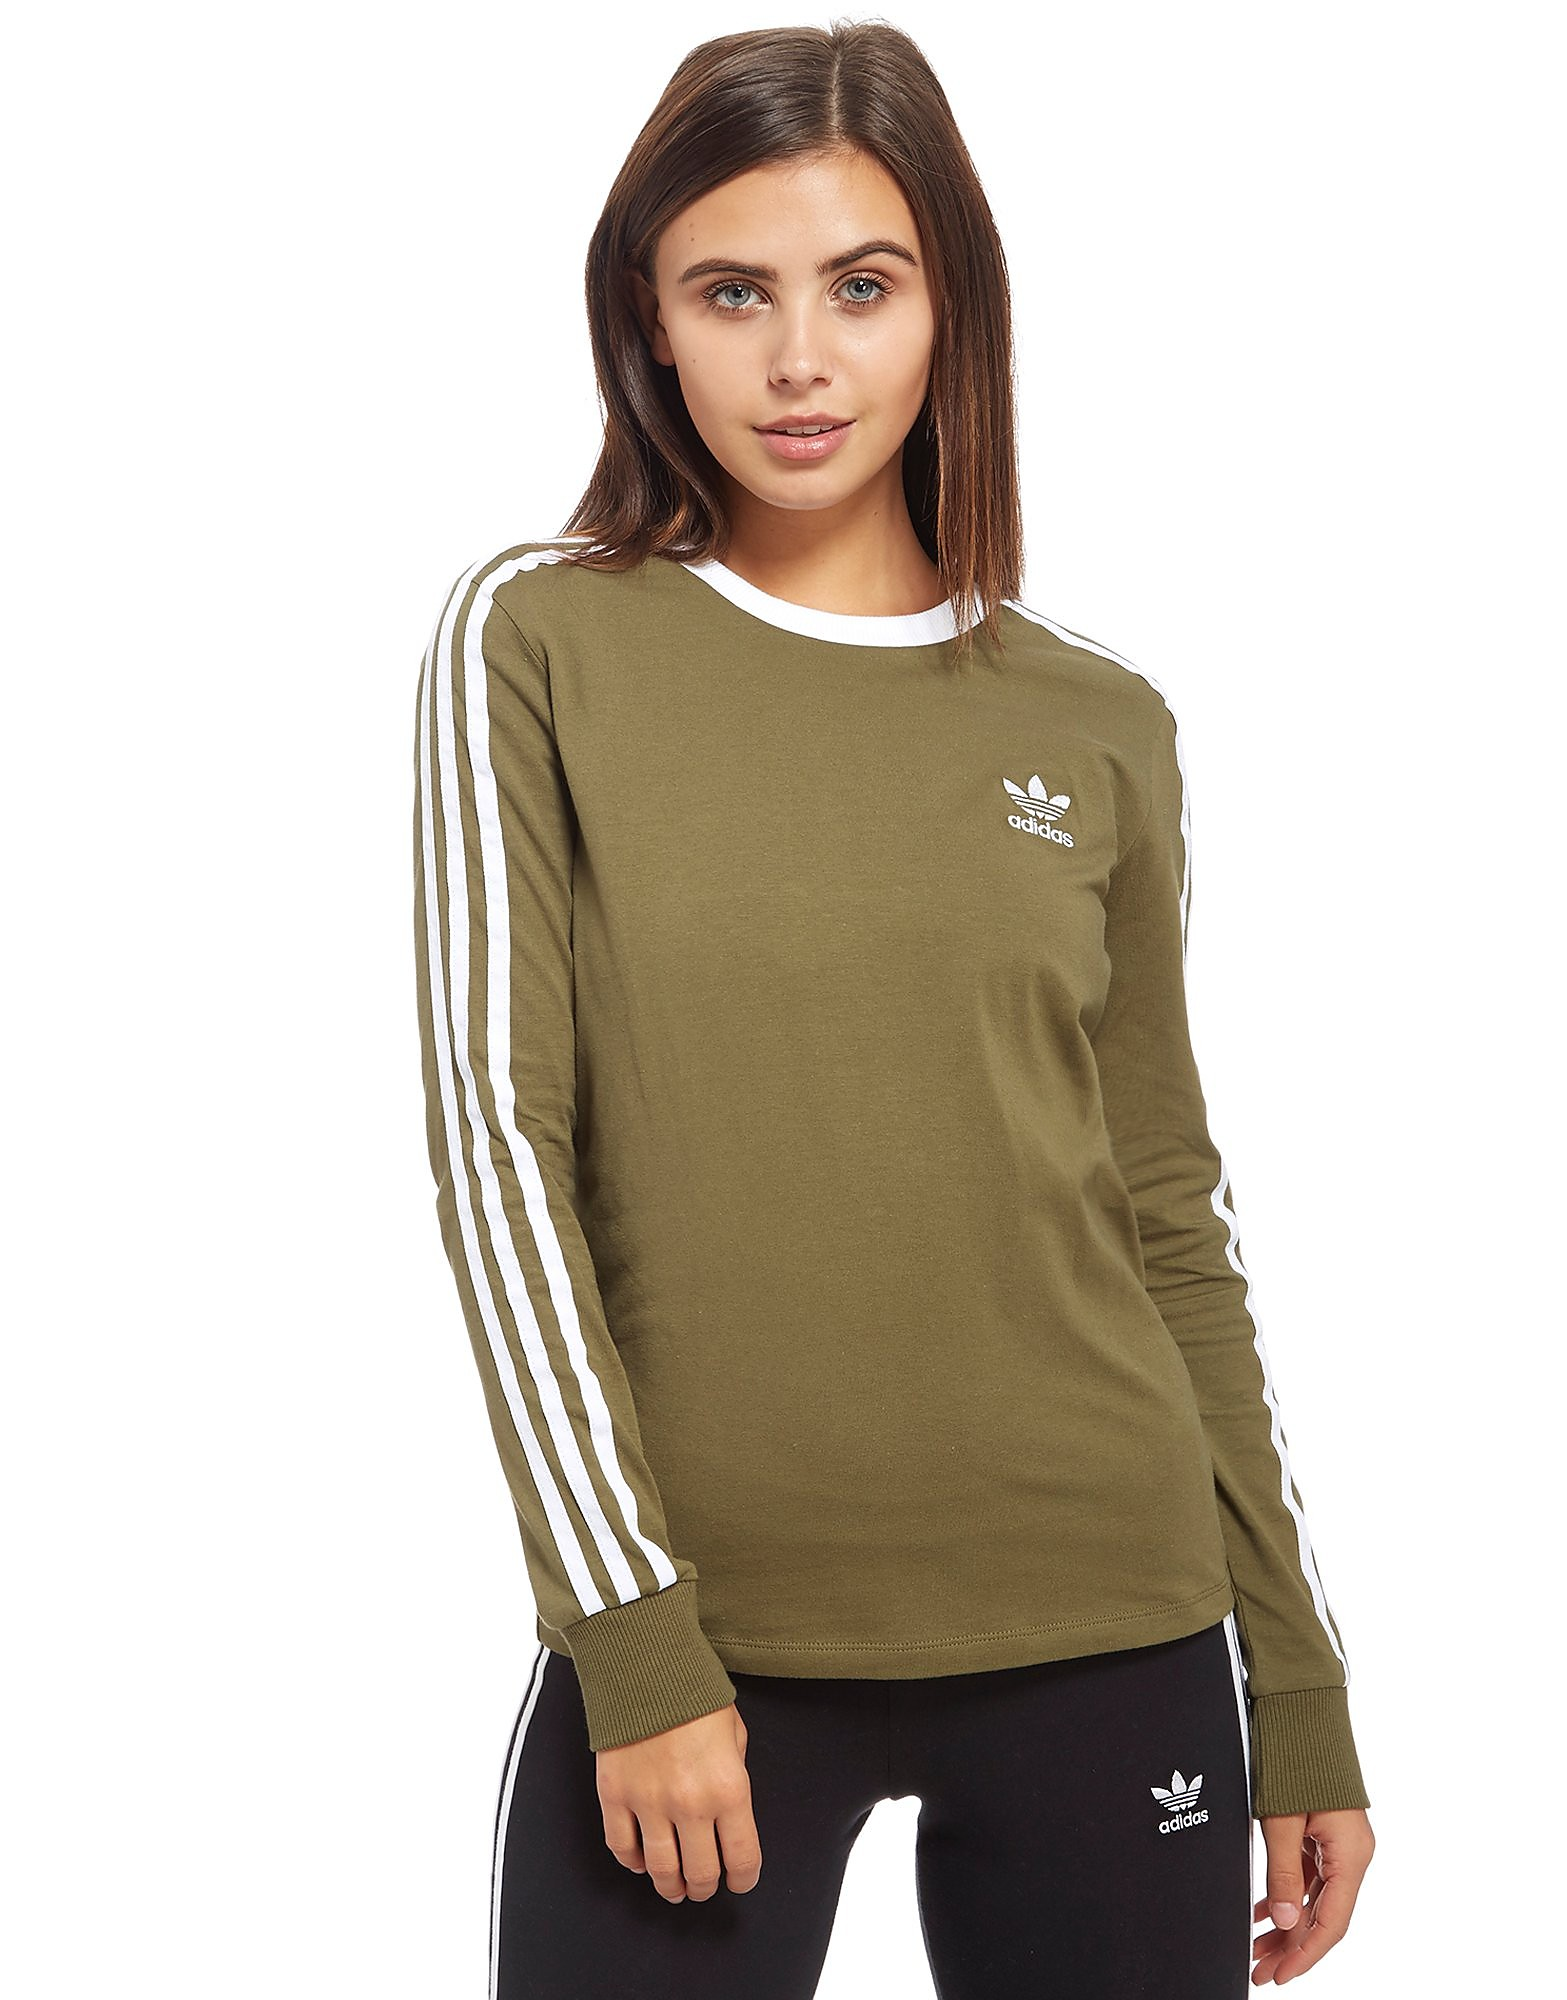 adidas Originals Long Sleeve California T-Shirt